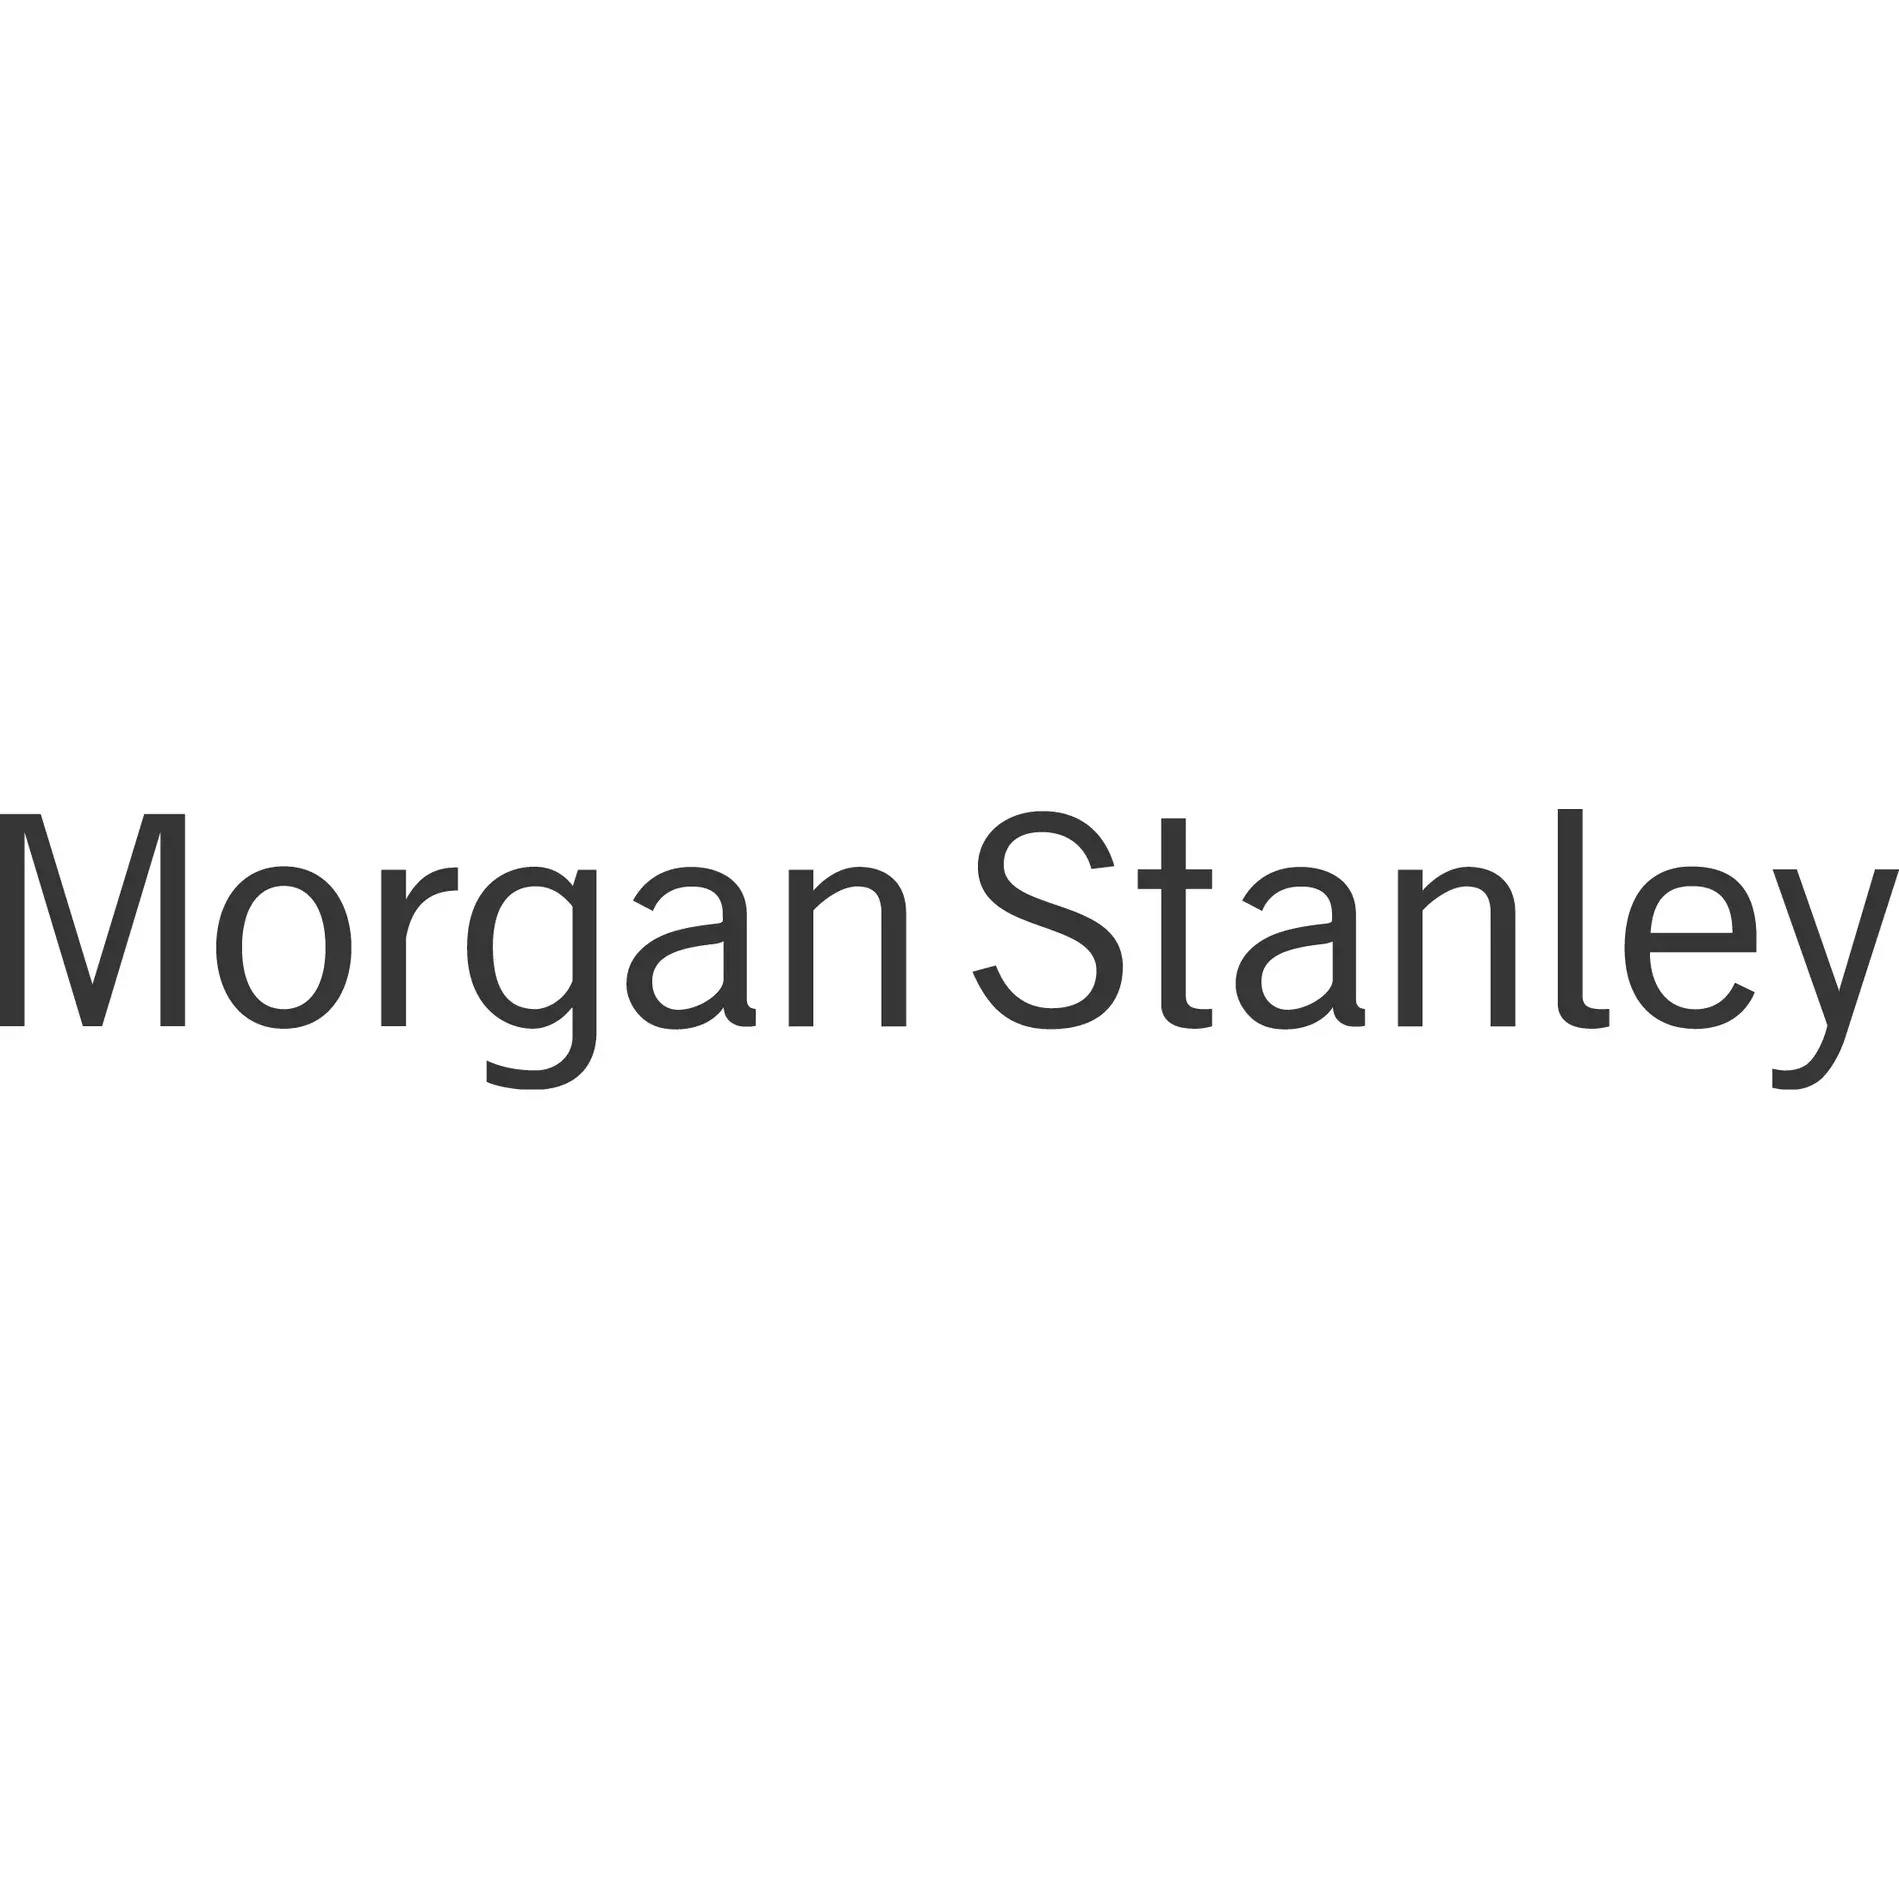 The Harper Koren Group - Morgan Stanley